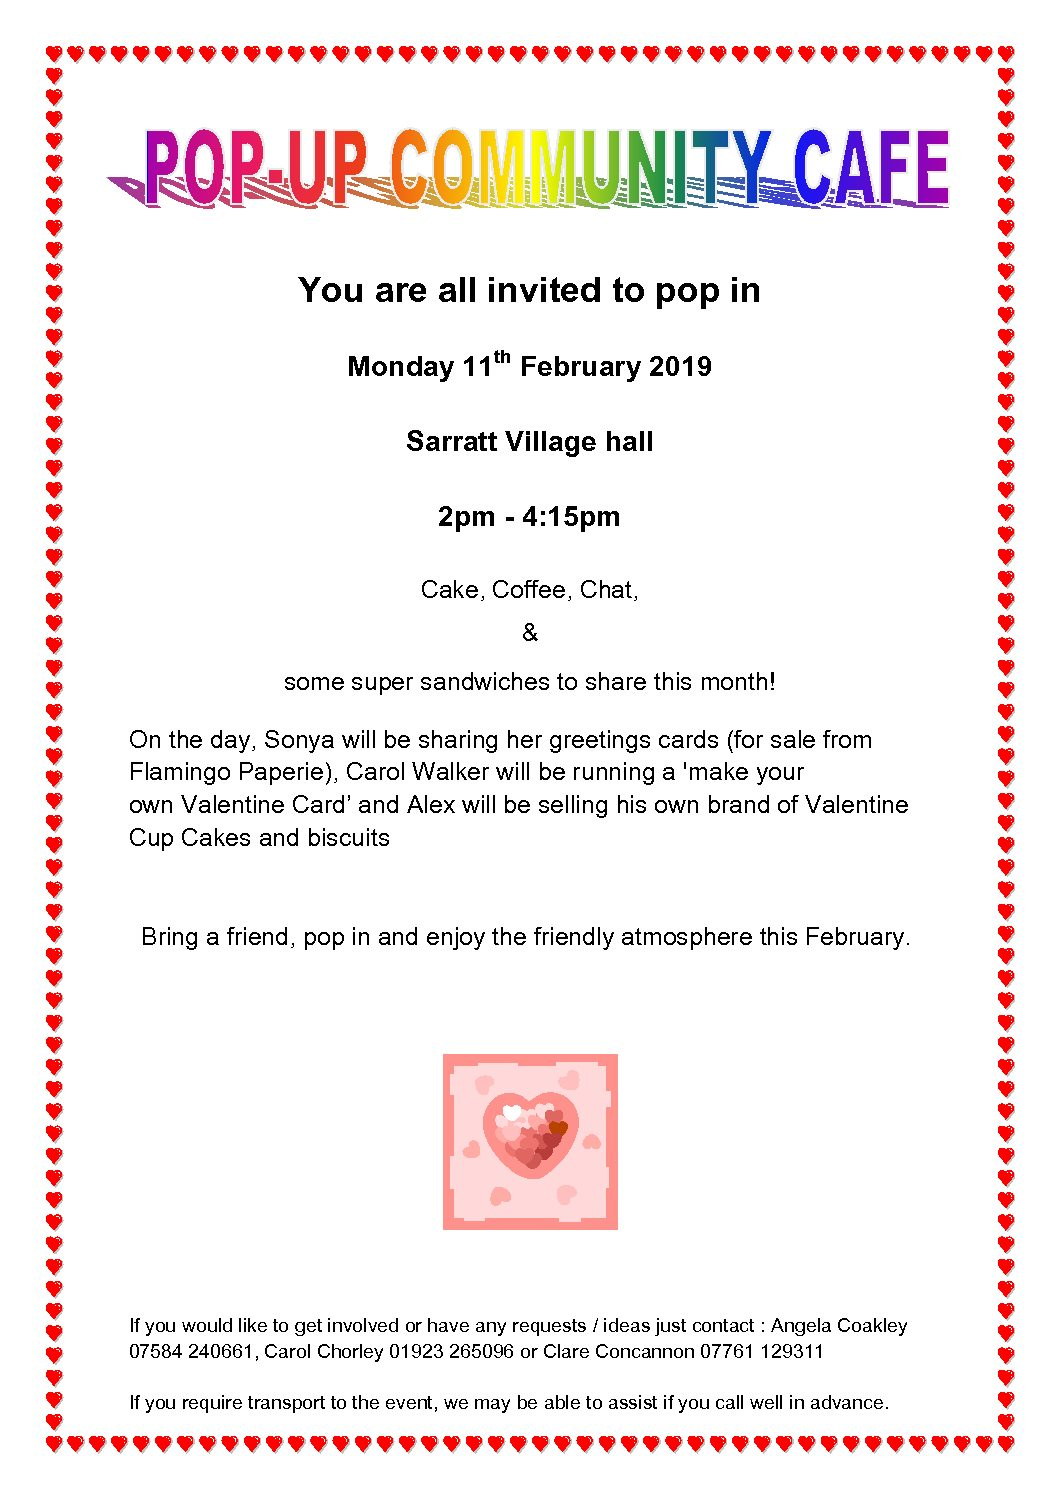 Sarratt Community Cafe is popping up again Monday 11th of February